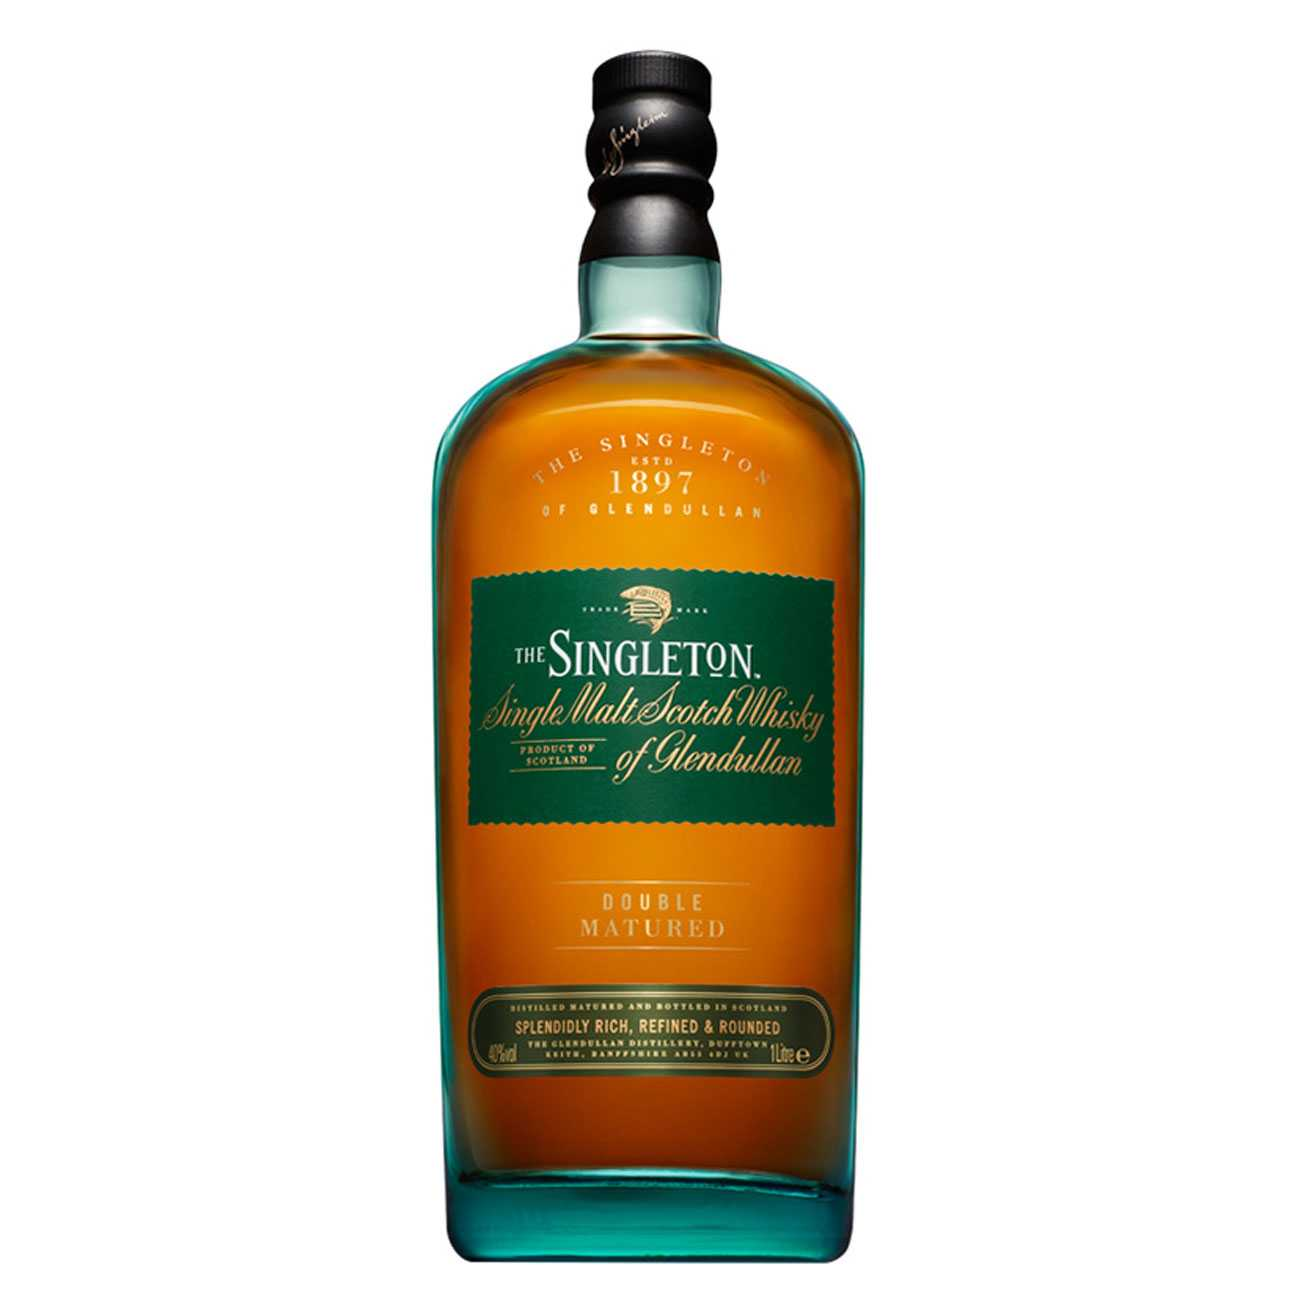 Whisky scotian, DOUBLE MATURED 1000 ML, Singleton Glendullan